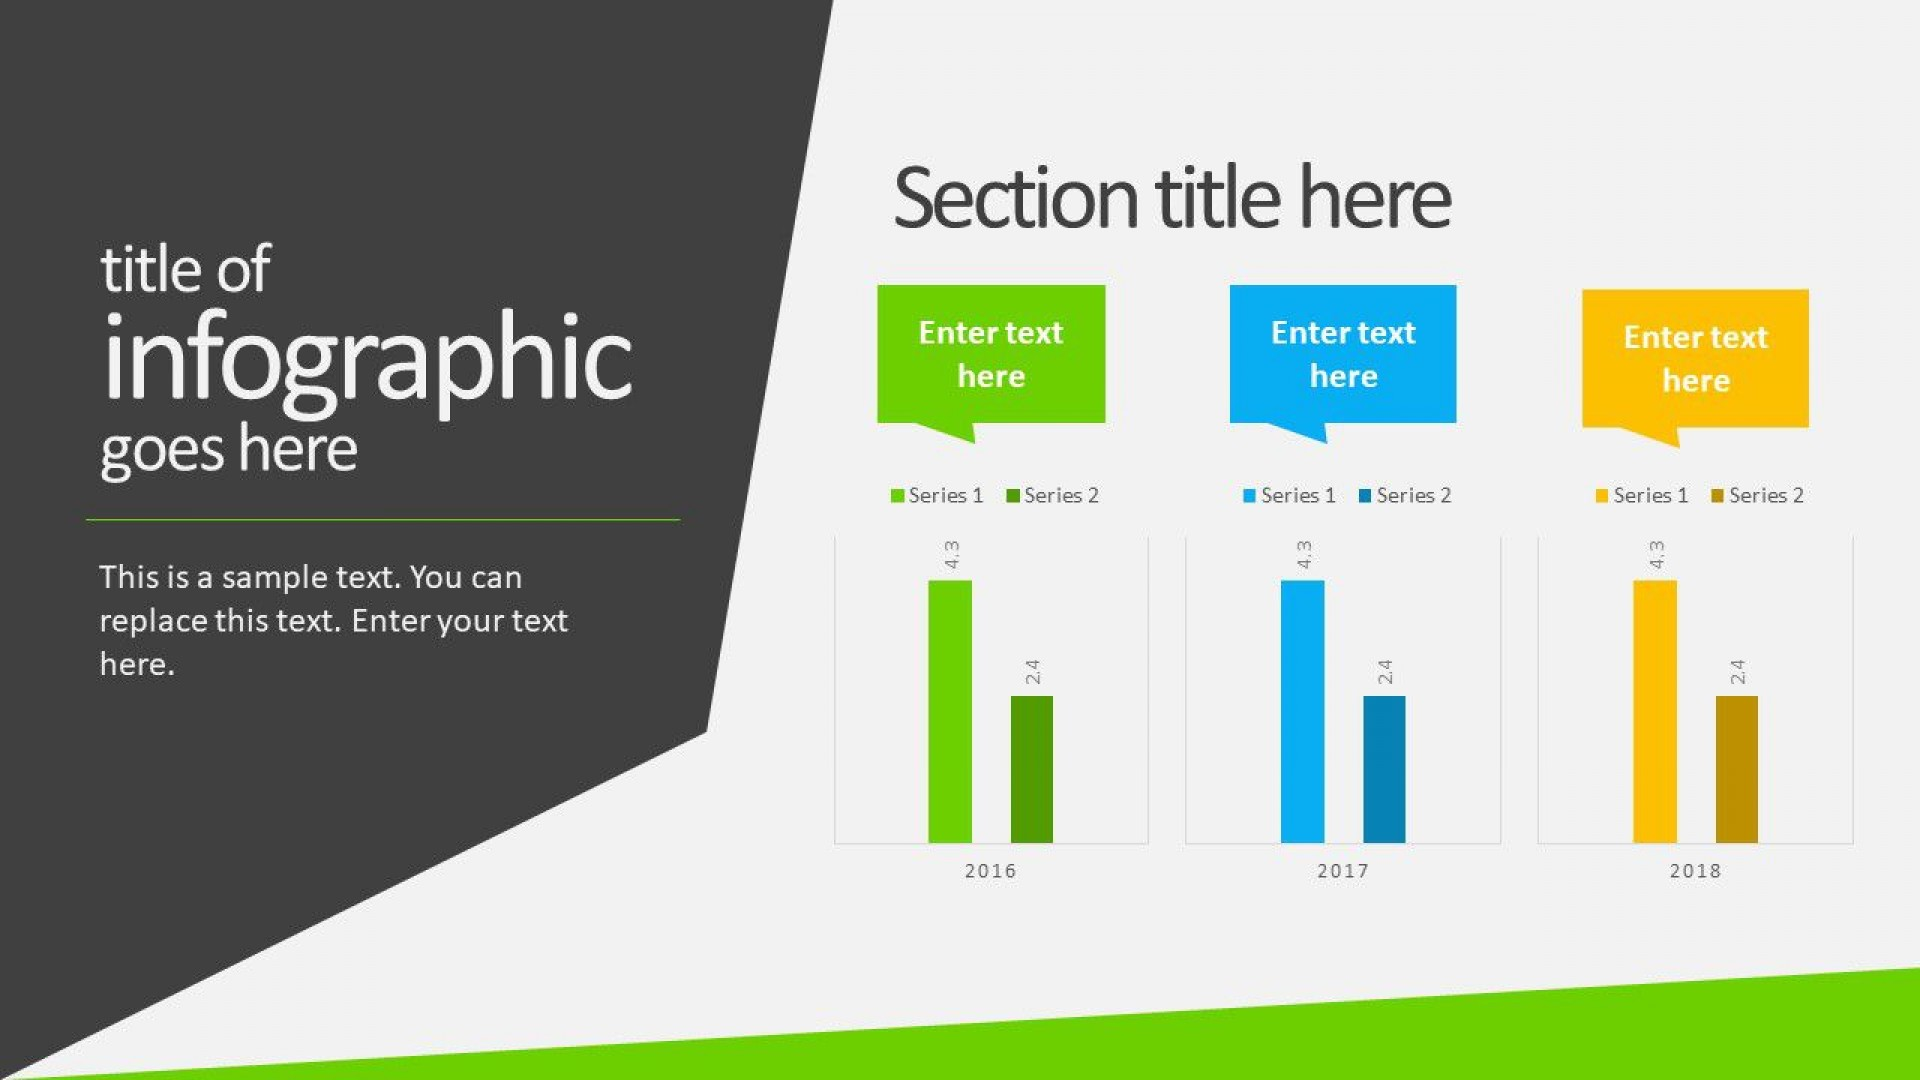 007 Best Animation Powerpoint Template Free Idea  Animated Download 2019 20101920